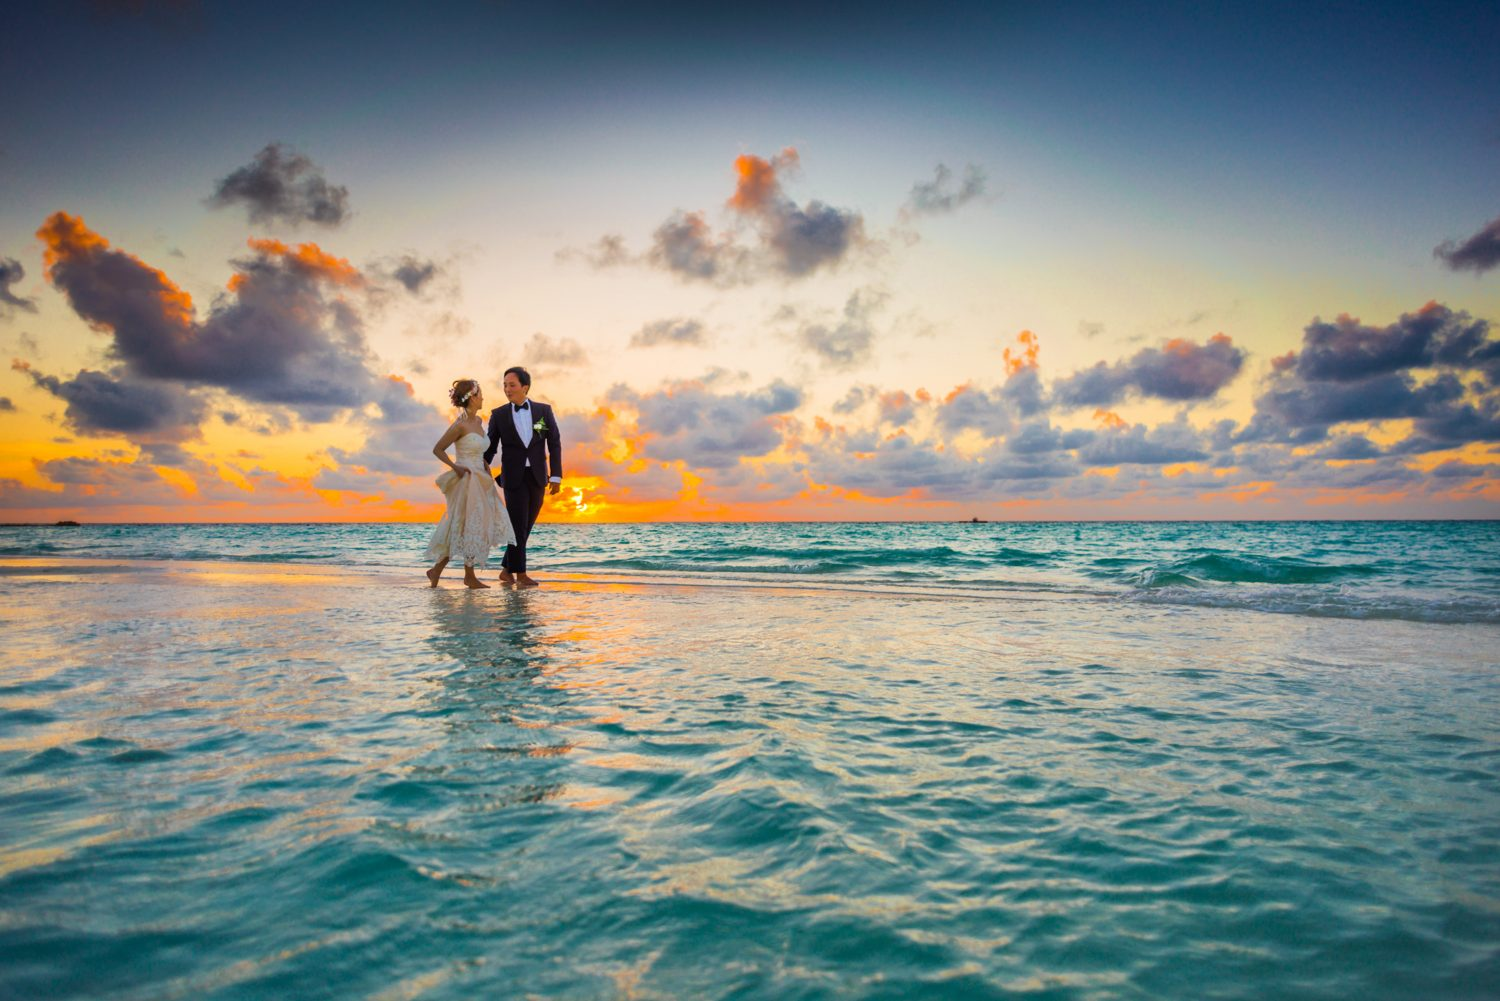 10 Romantic And Tranquil Honeymoon Destinations: Breathtaking Islands For Your Dream Honeymoon